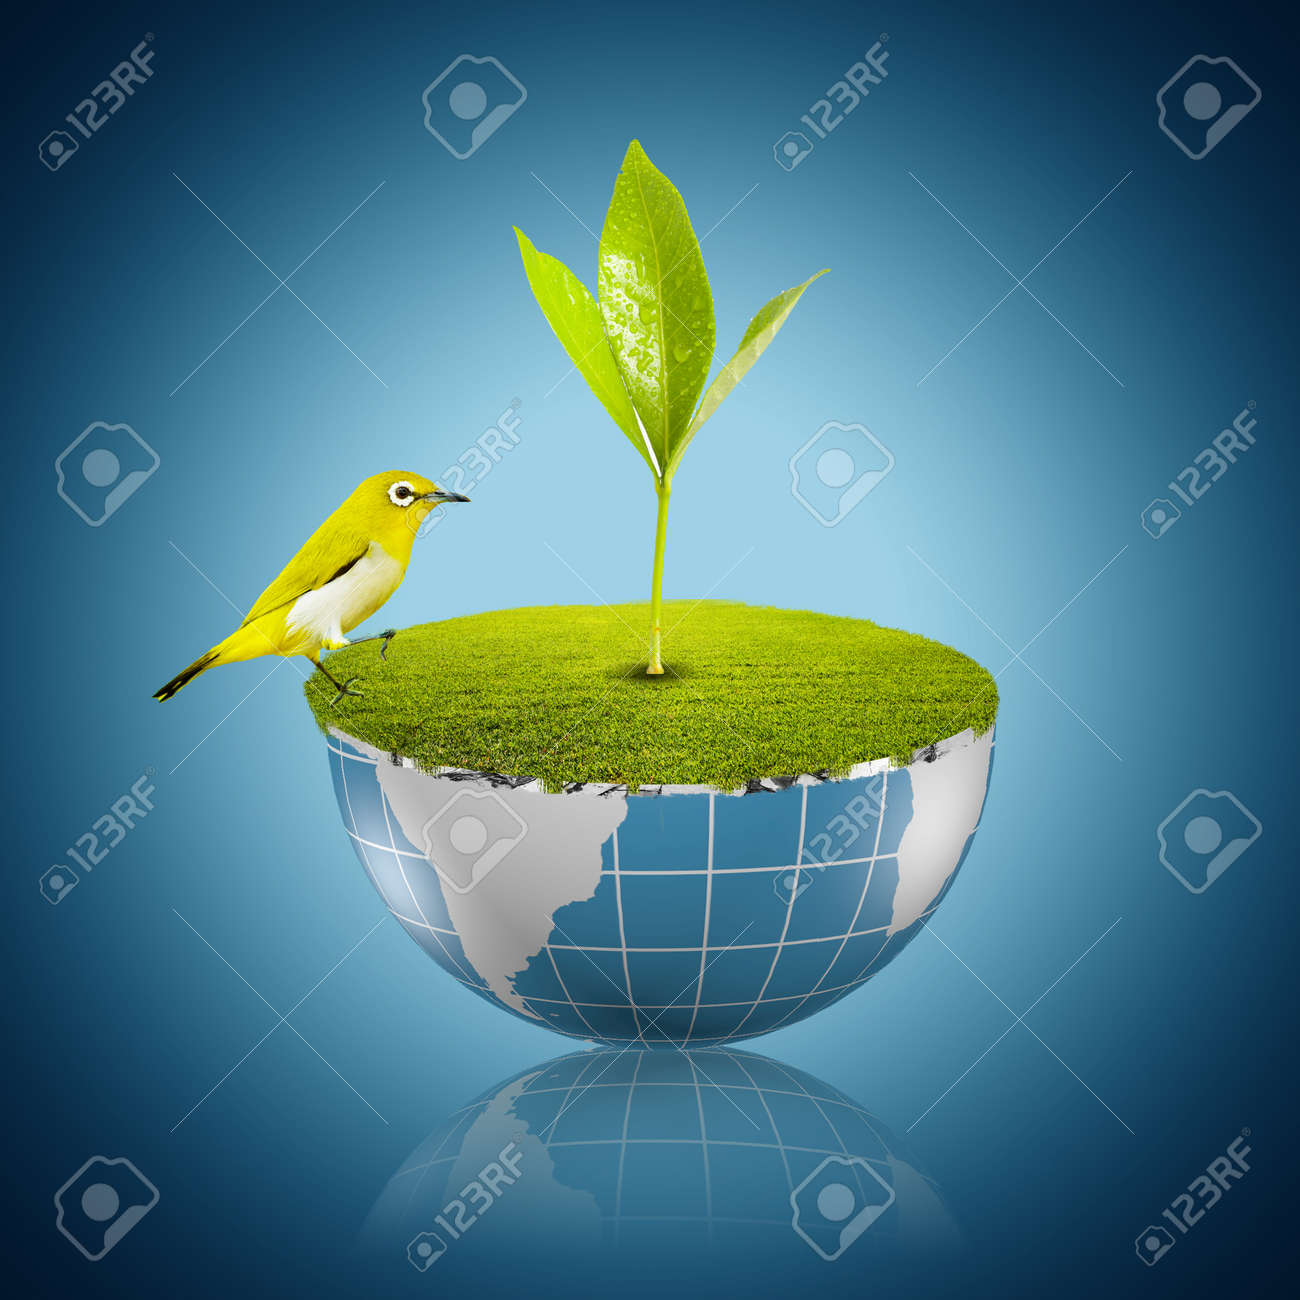 Plant growing on globe with yellow bird Stock Photo - 17882387